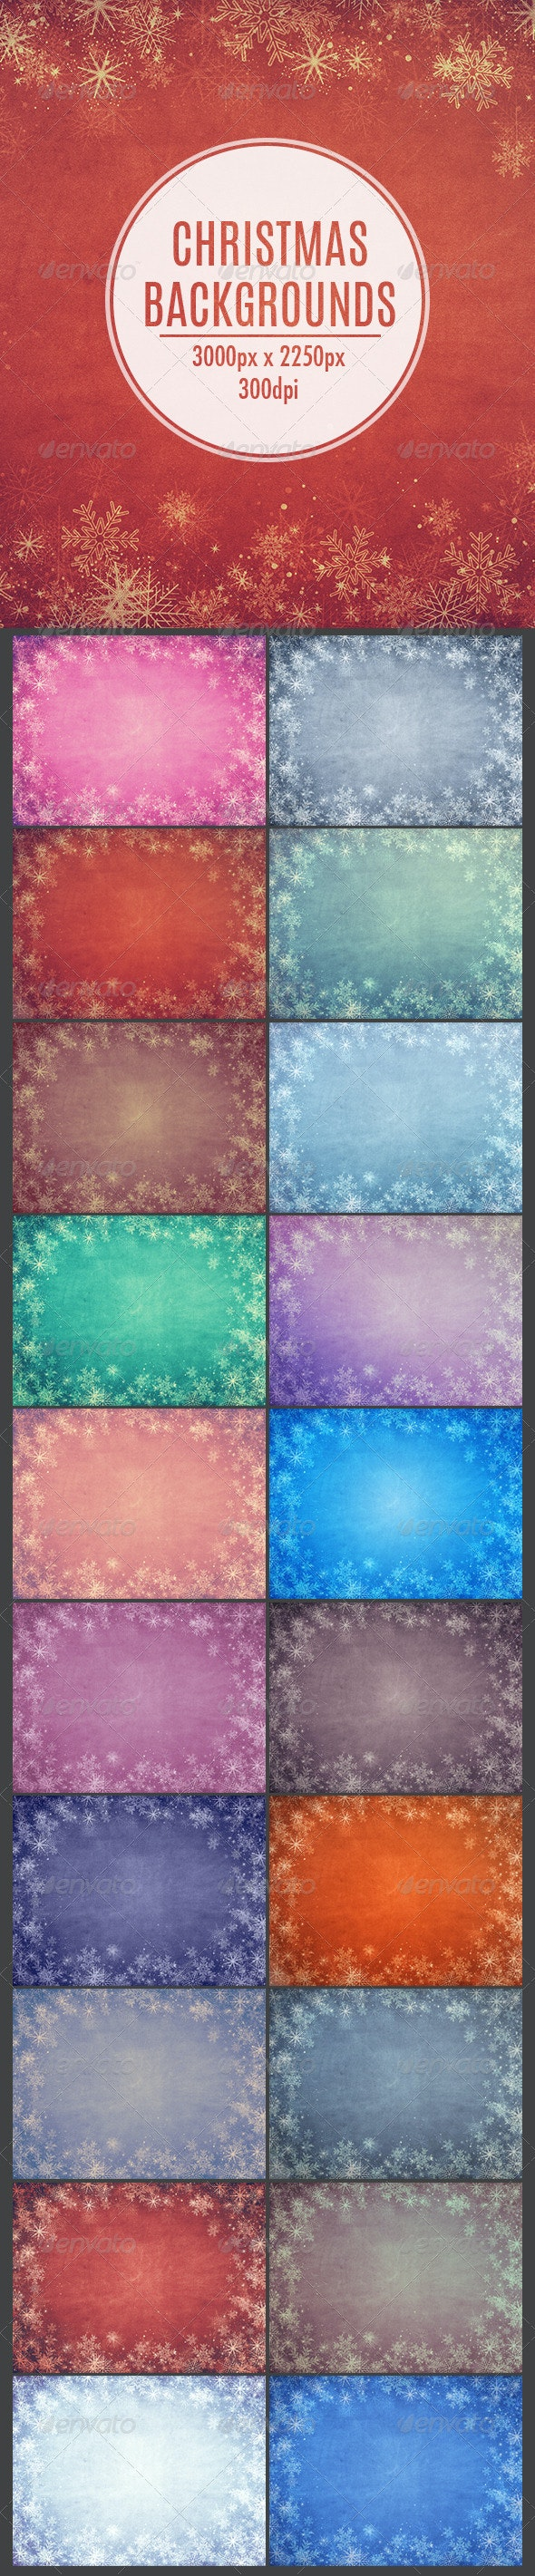 20 Christmas Backgrounds - Backgrounds Graphics